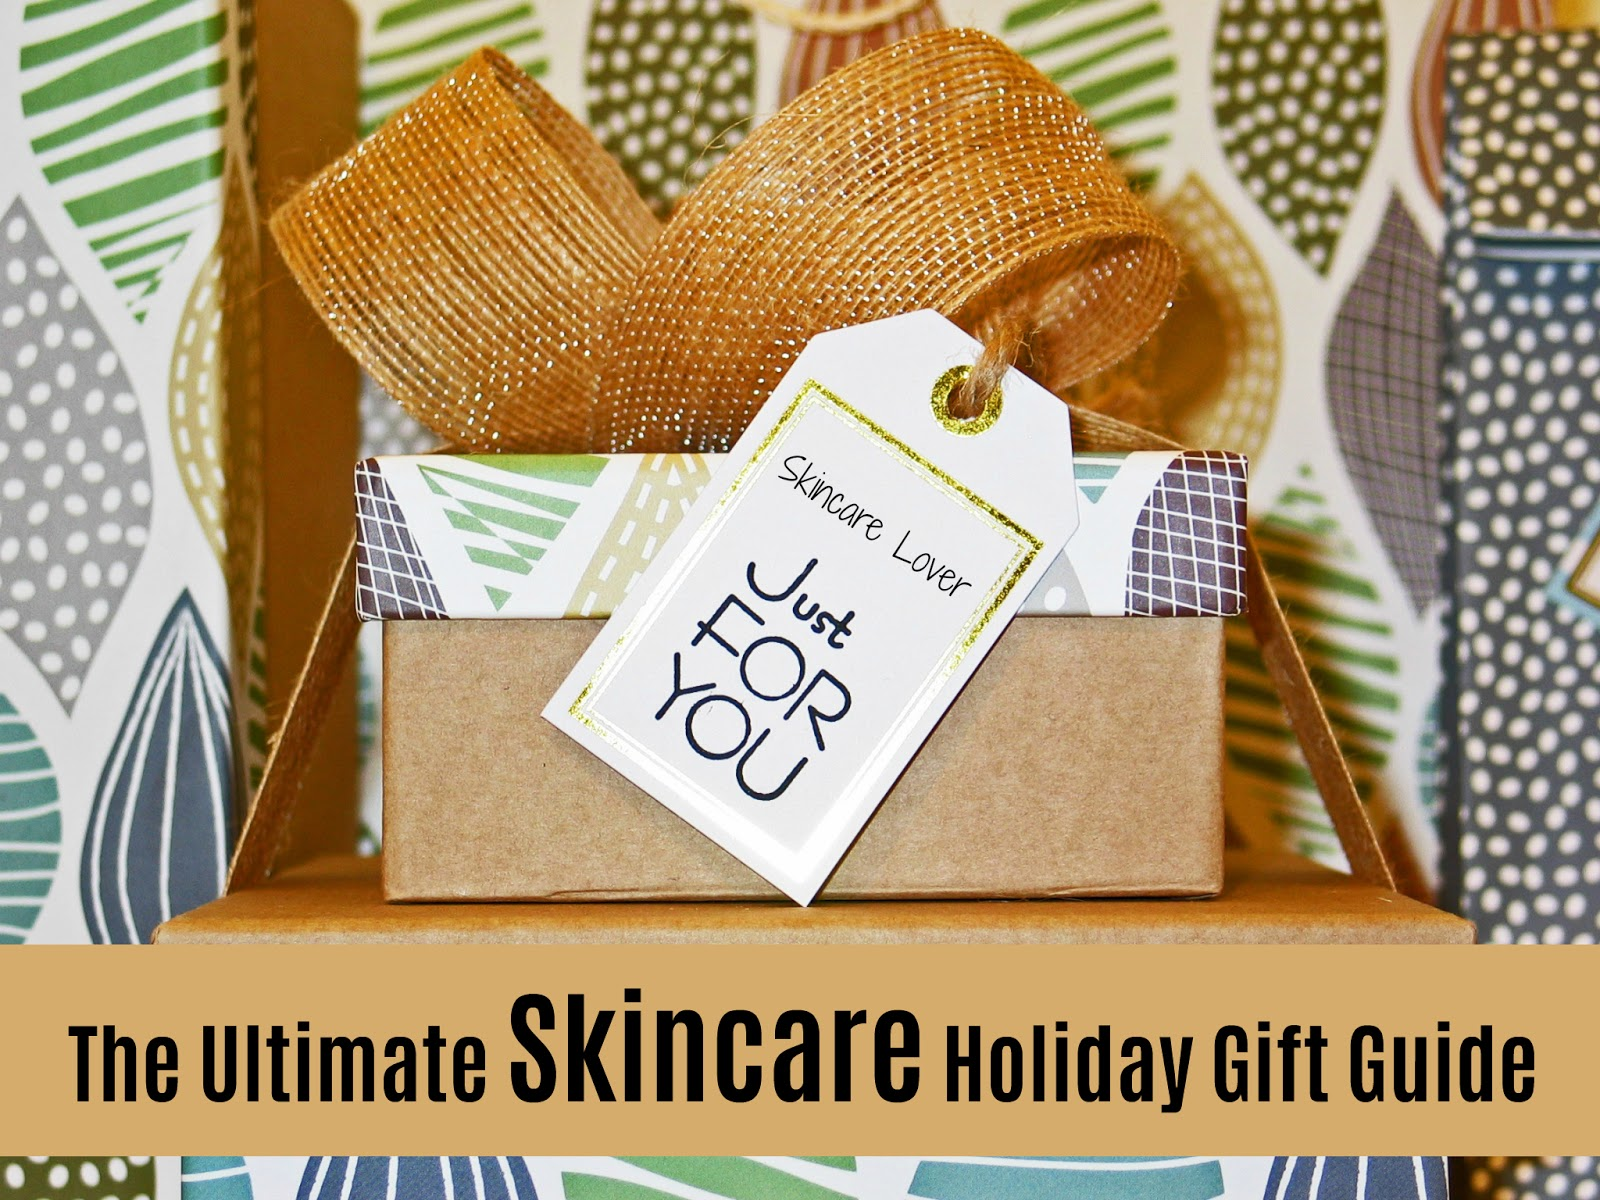 The Ultimate Skincare Holiday Gift Guide By Barbie's Beauty Bits